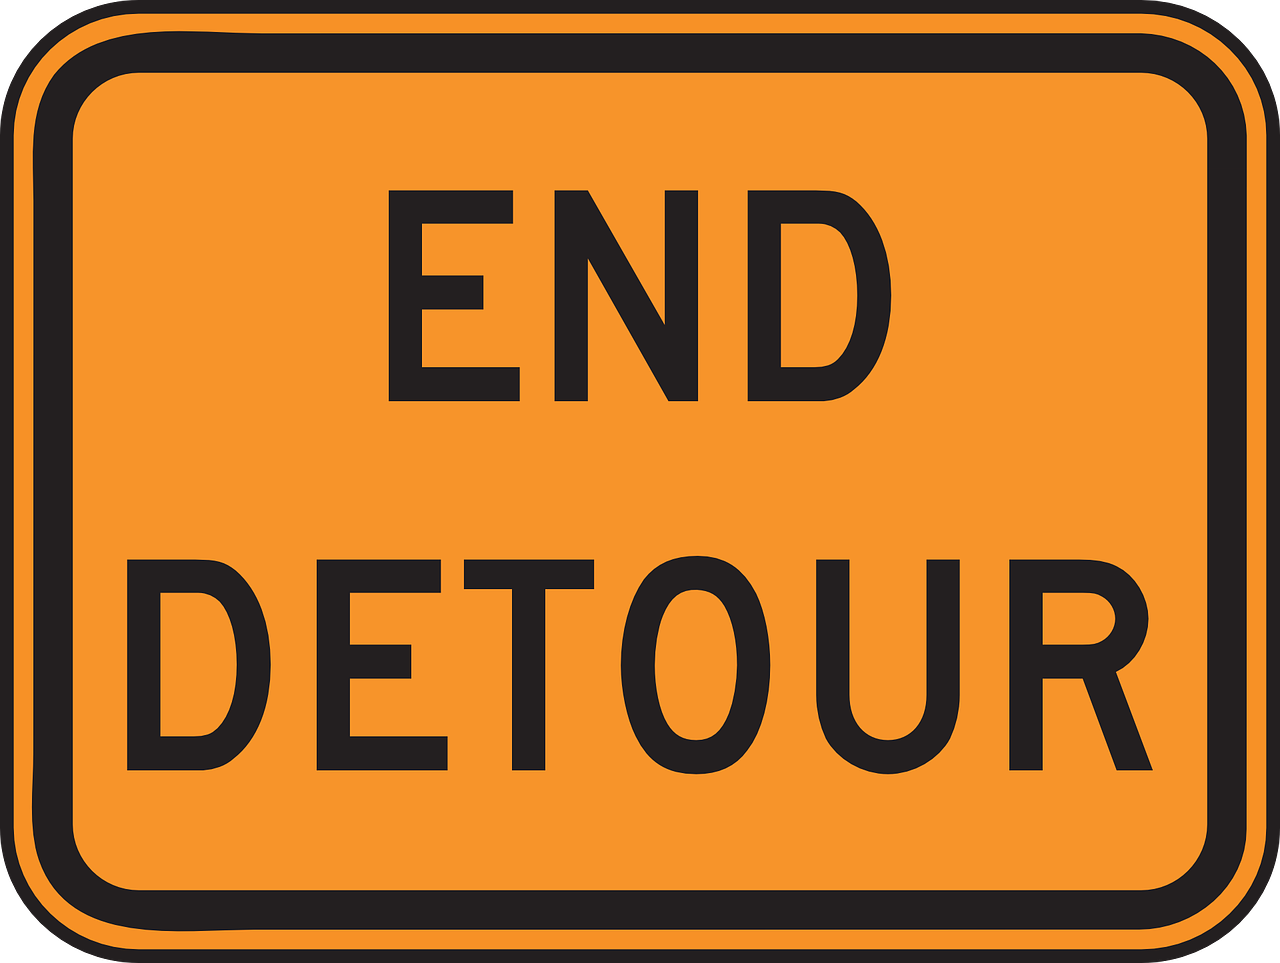 end detour sign free photo